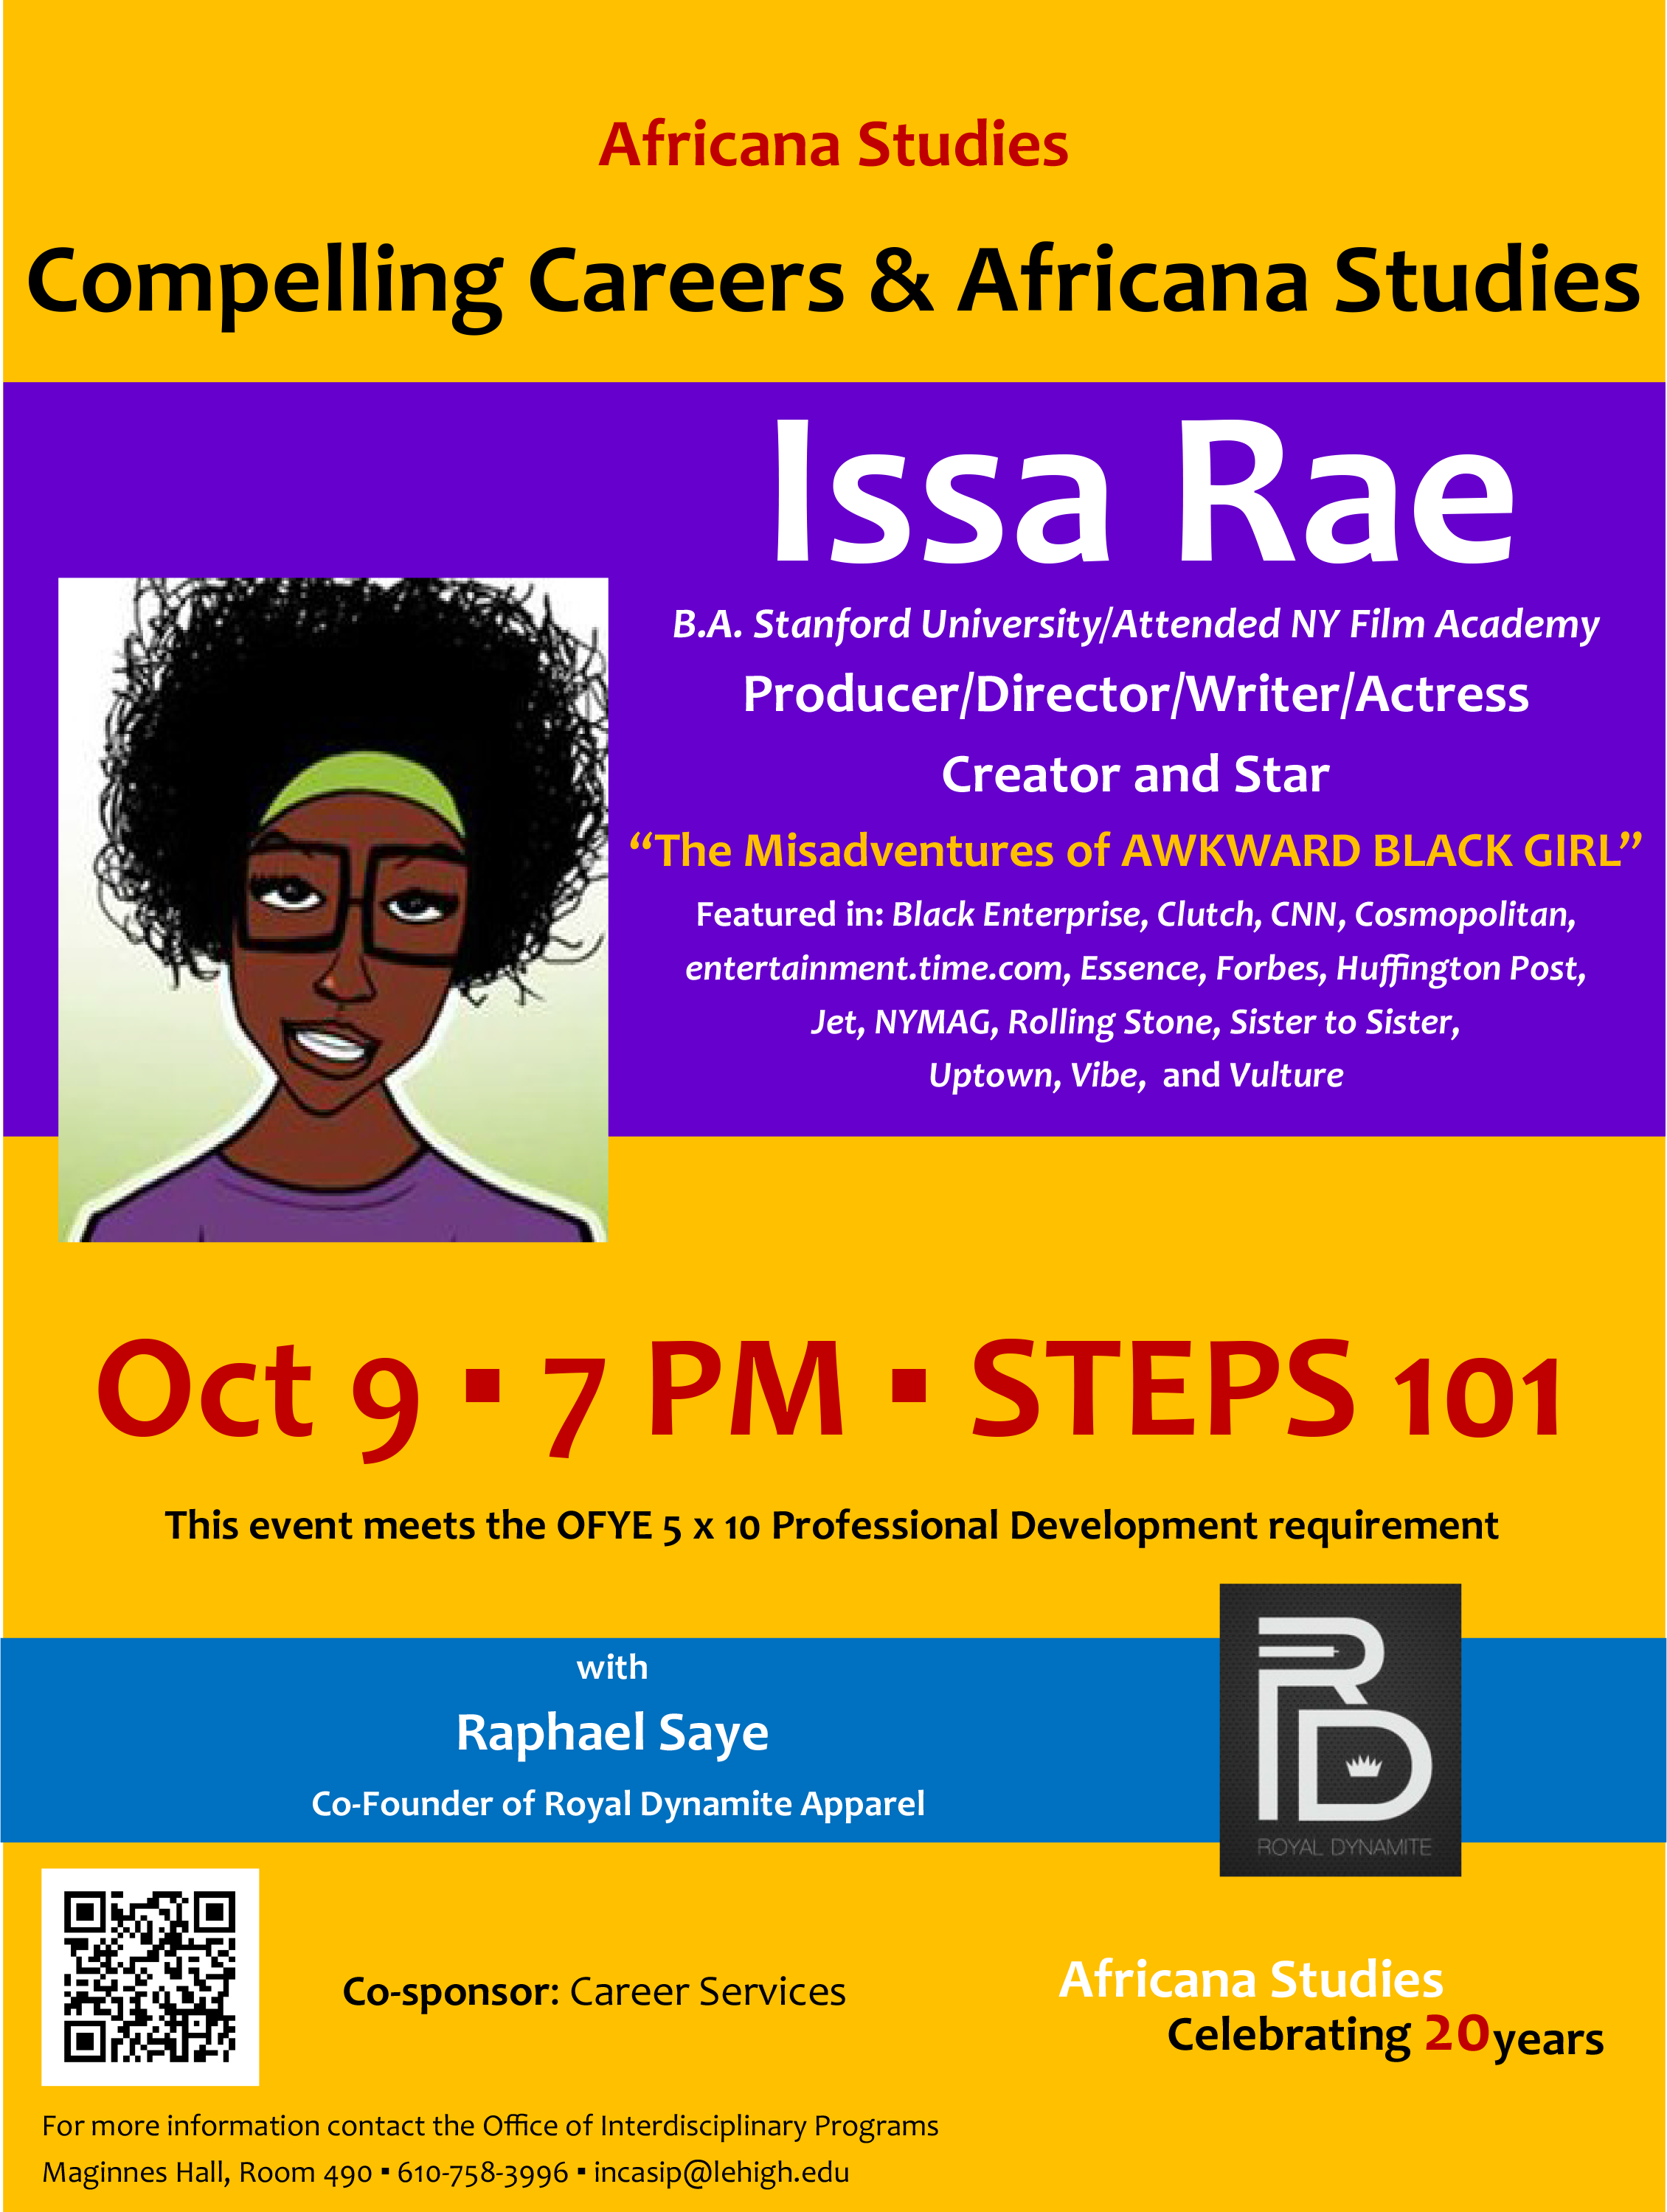 Leading Urban Clothing Line Partners with Issa Rae for Africana Studies Seminar at Lehigh University